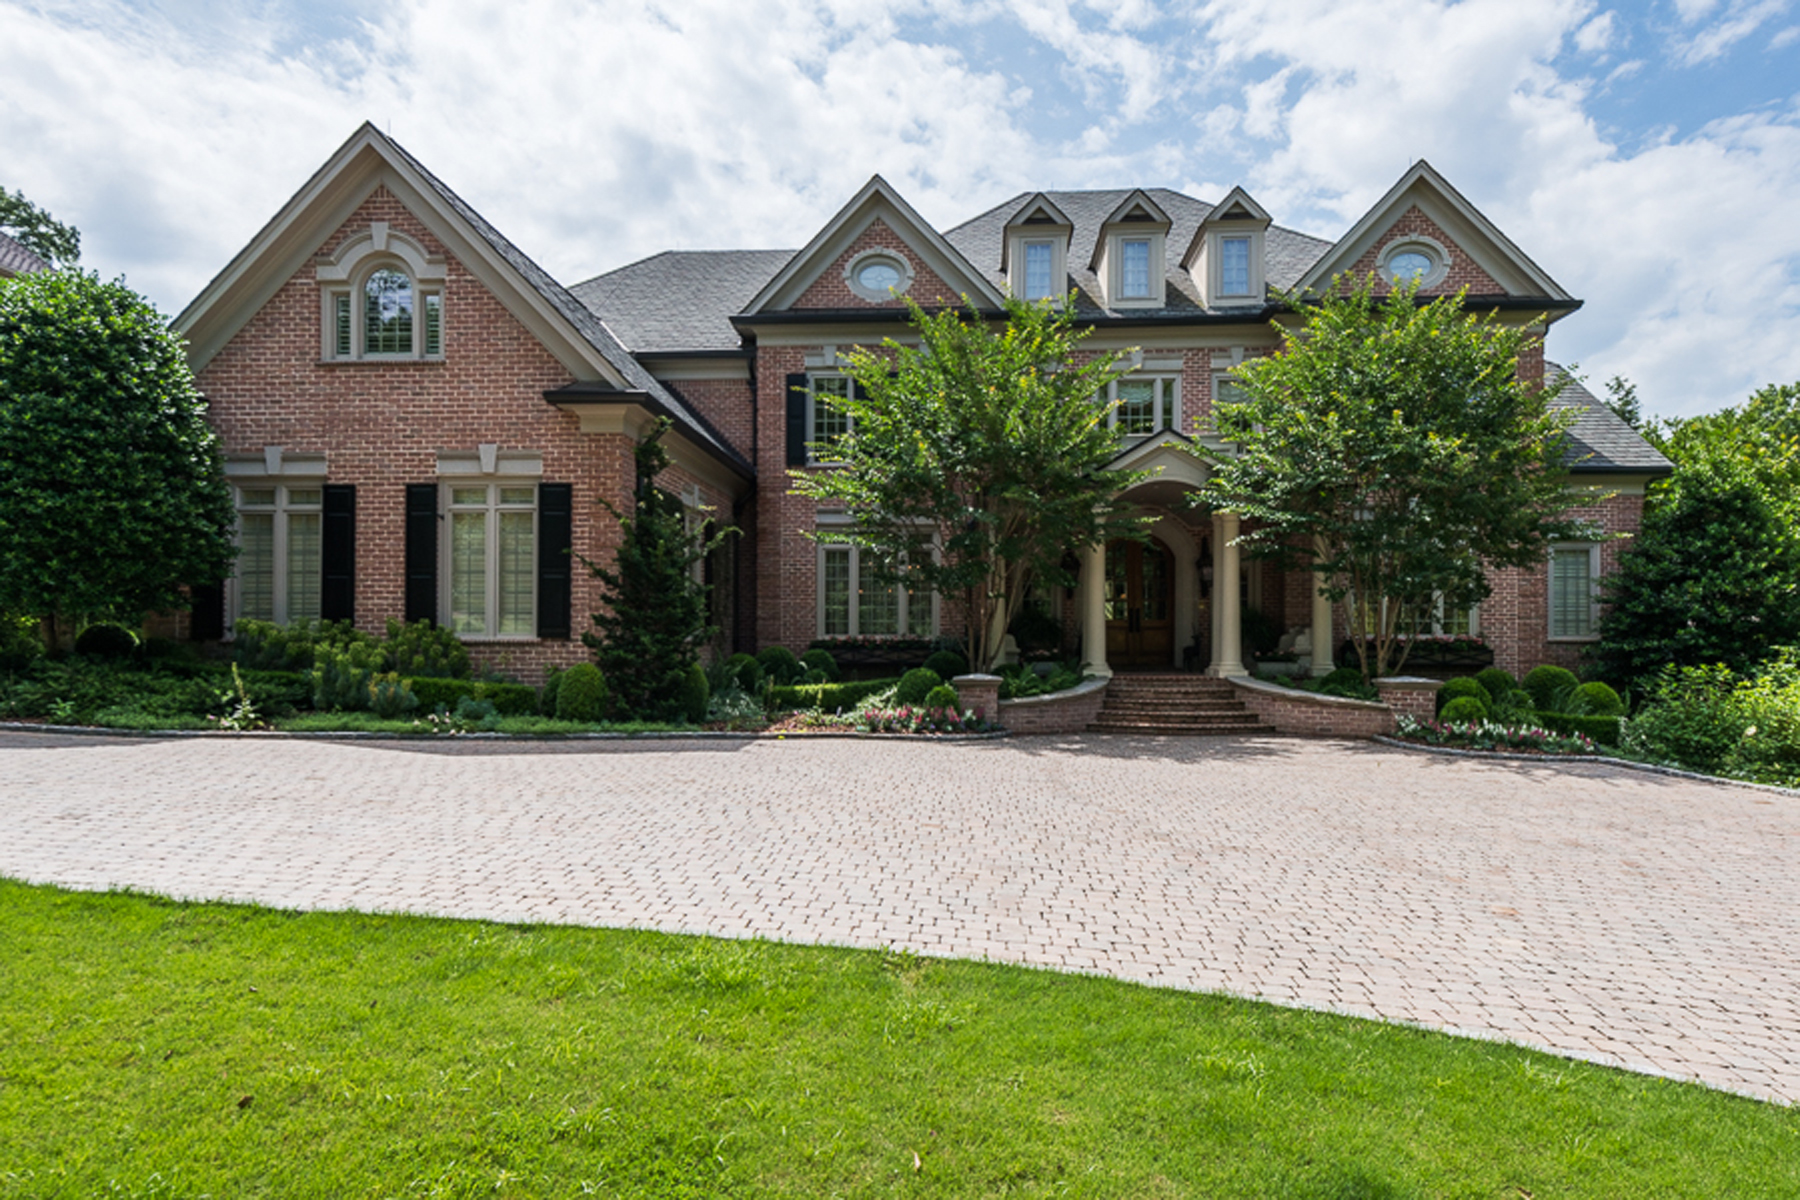 Single Family Home for Sale at A Masterpiece In Johns Creek Most Prestigious Gated Golf Community 490 Covington Cove Alpharetta, Georgia, 30022 United States